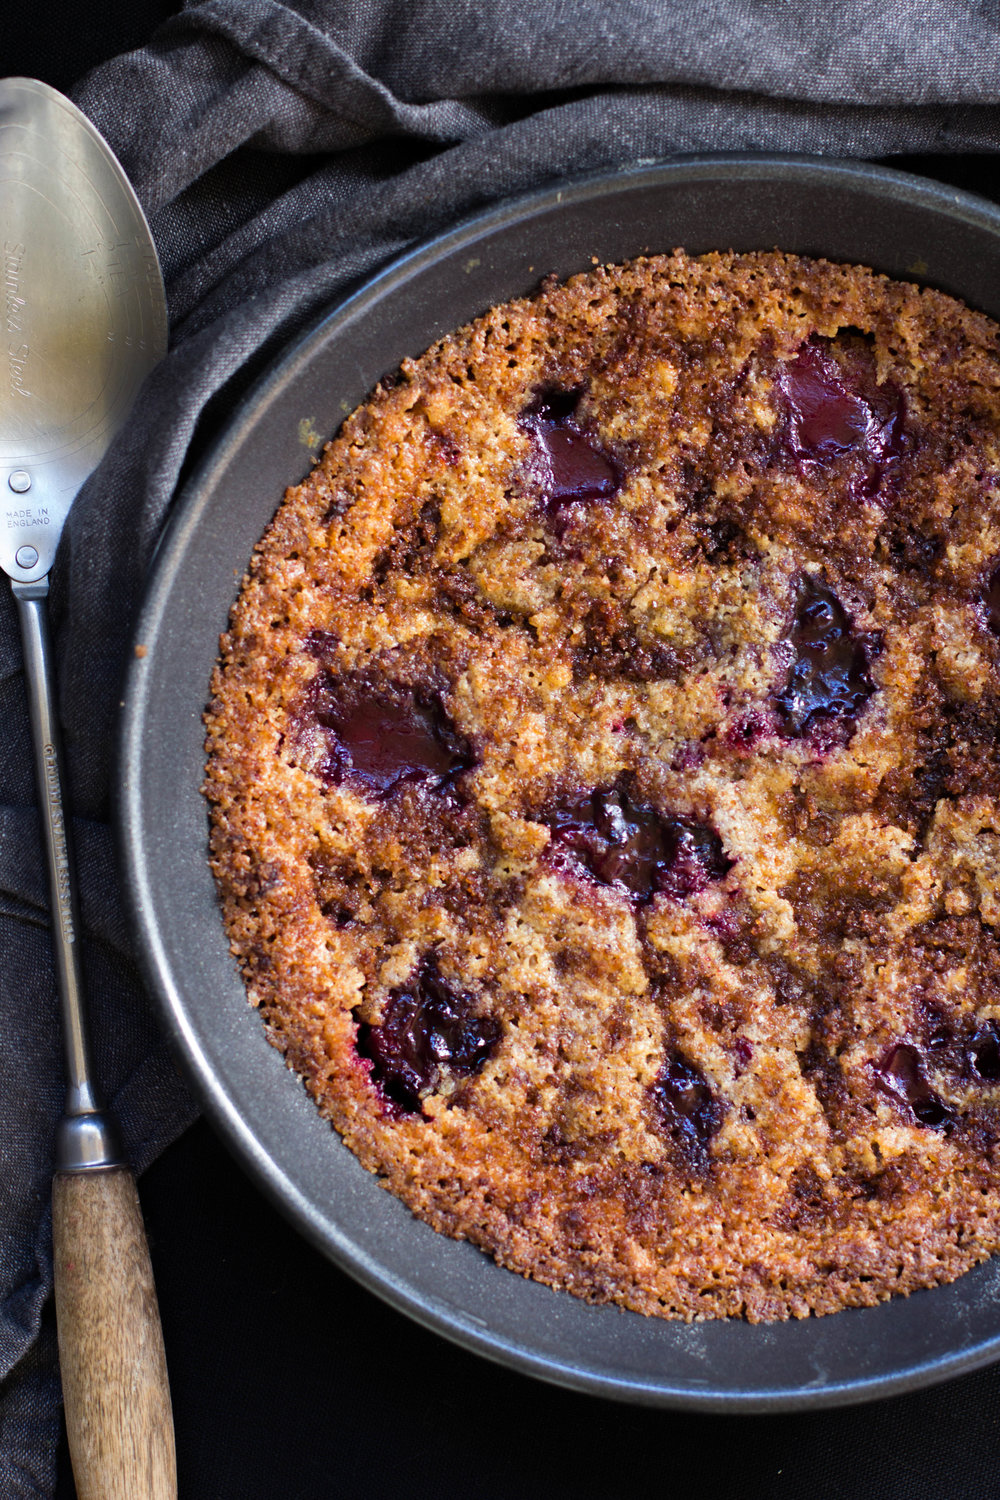 Gooey deposits of concentrated roasted plum, nestled amongst a nutty, buttery cake.